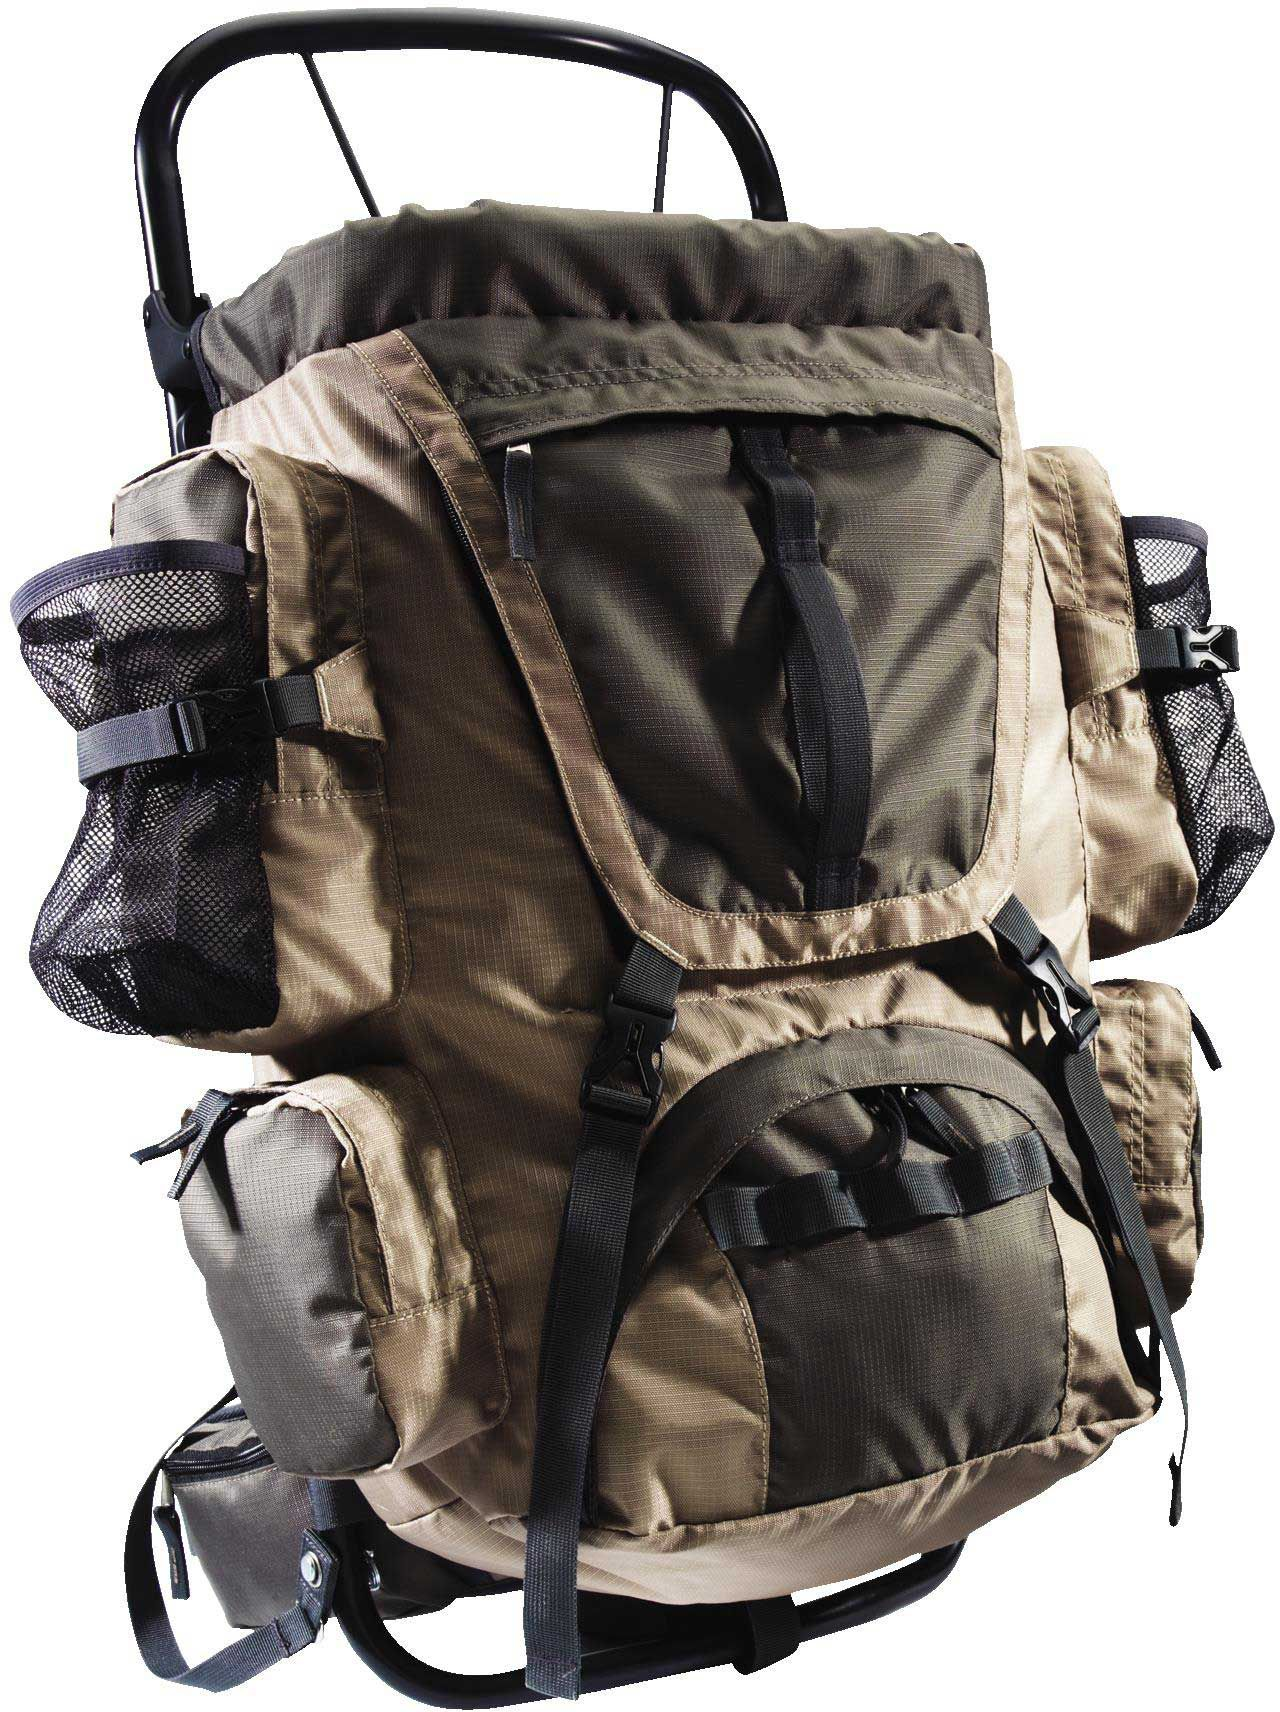 field stream 40l external frame pack - External Frame Hiking Backpack